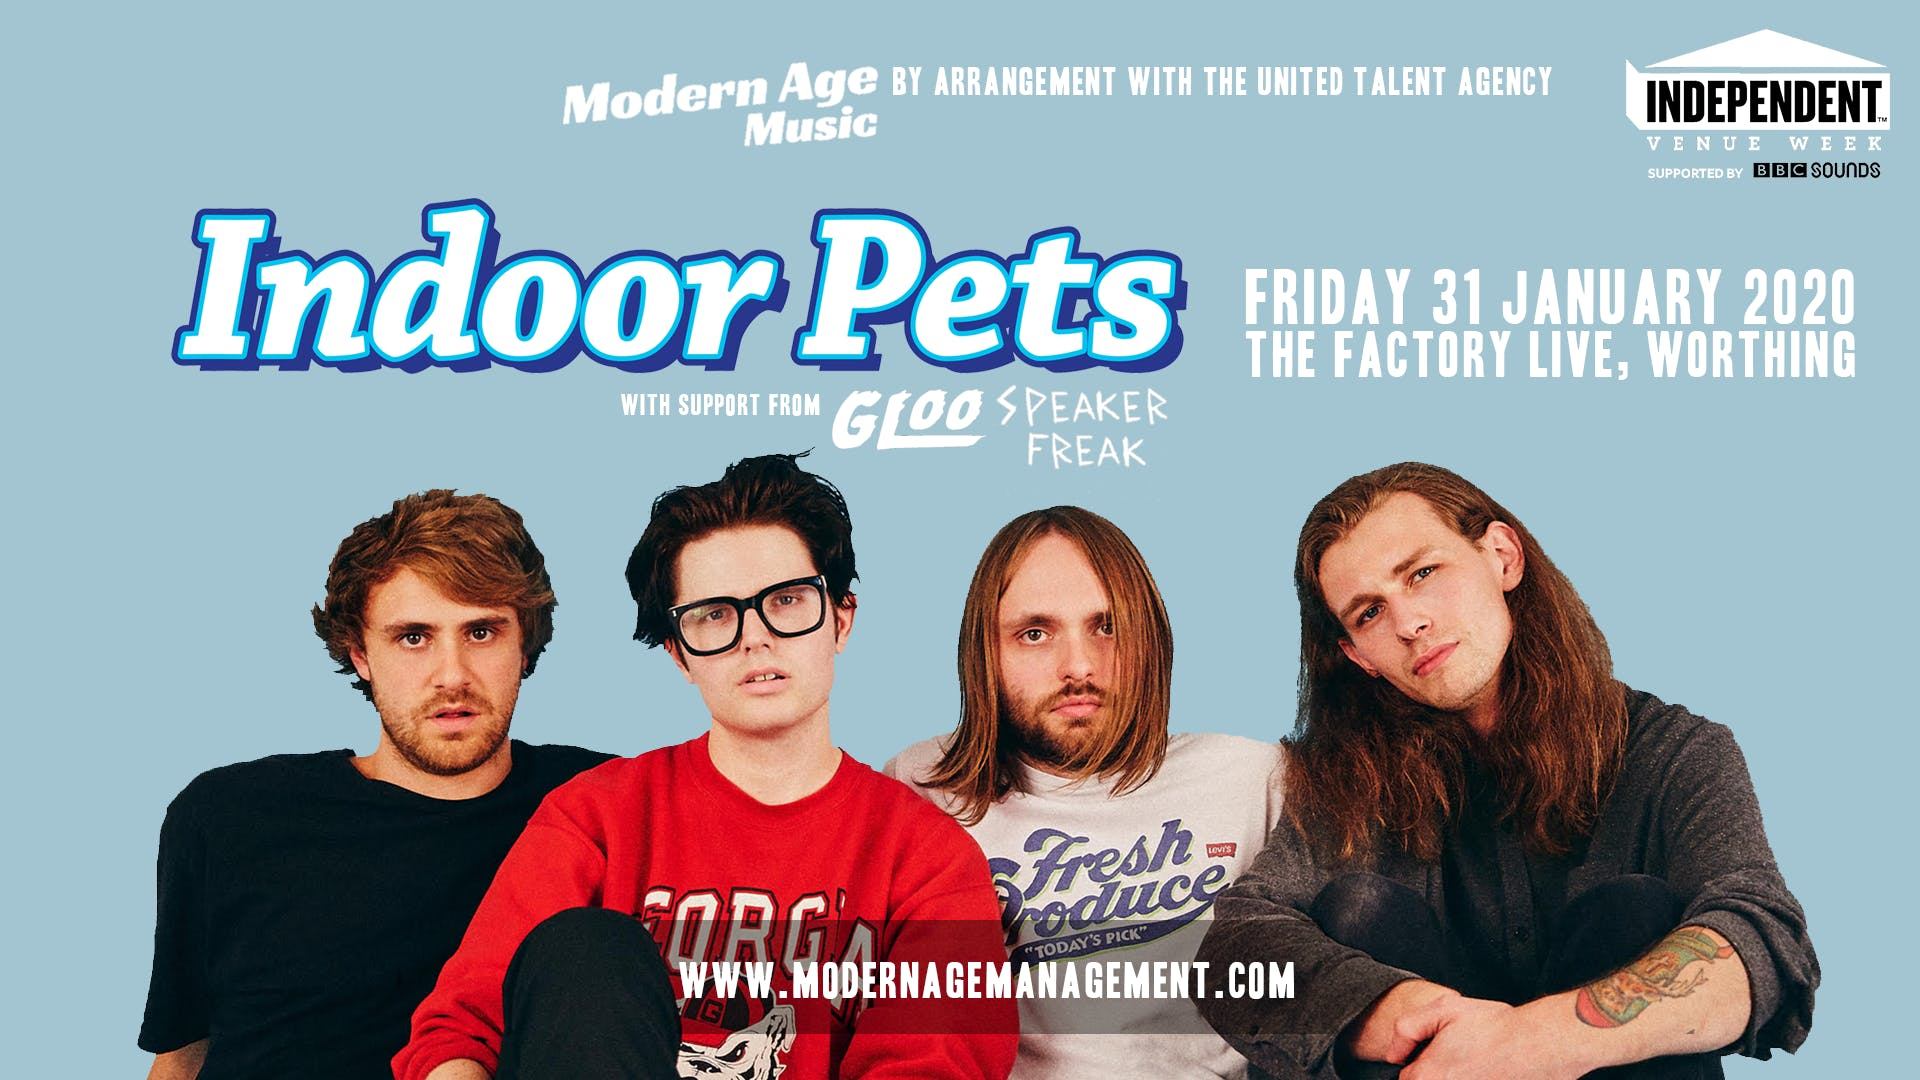 IVW 2020: Indoor Pets Play The Factory Live